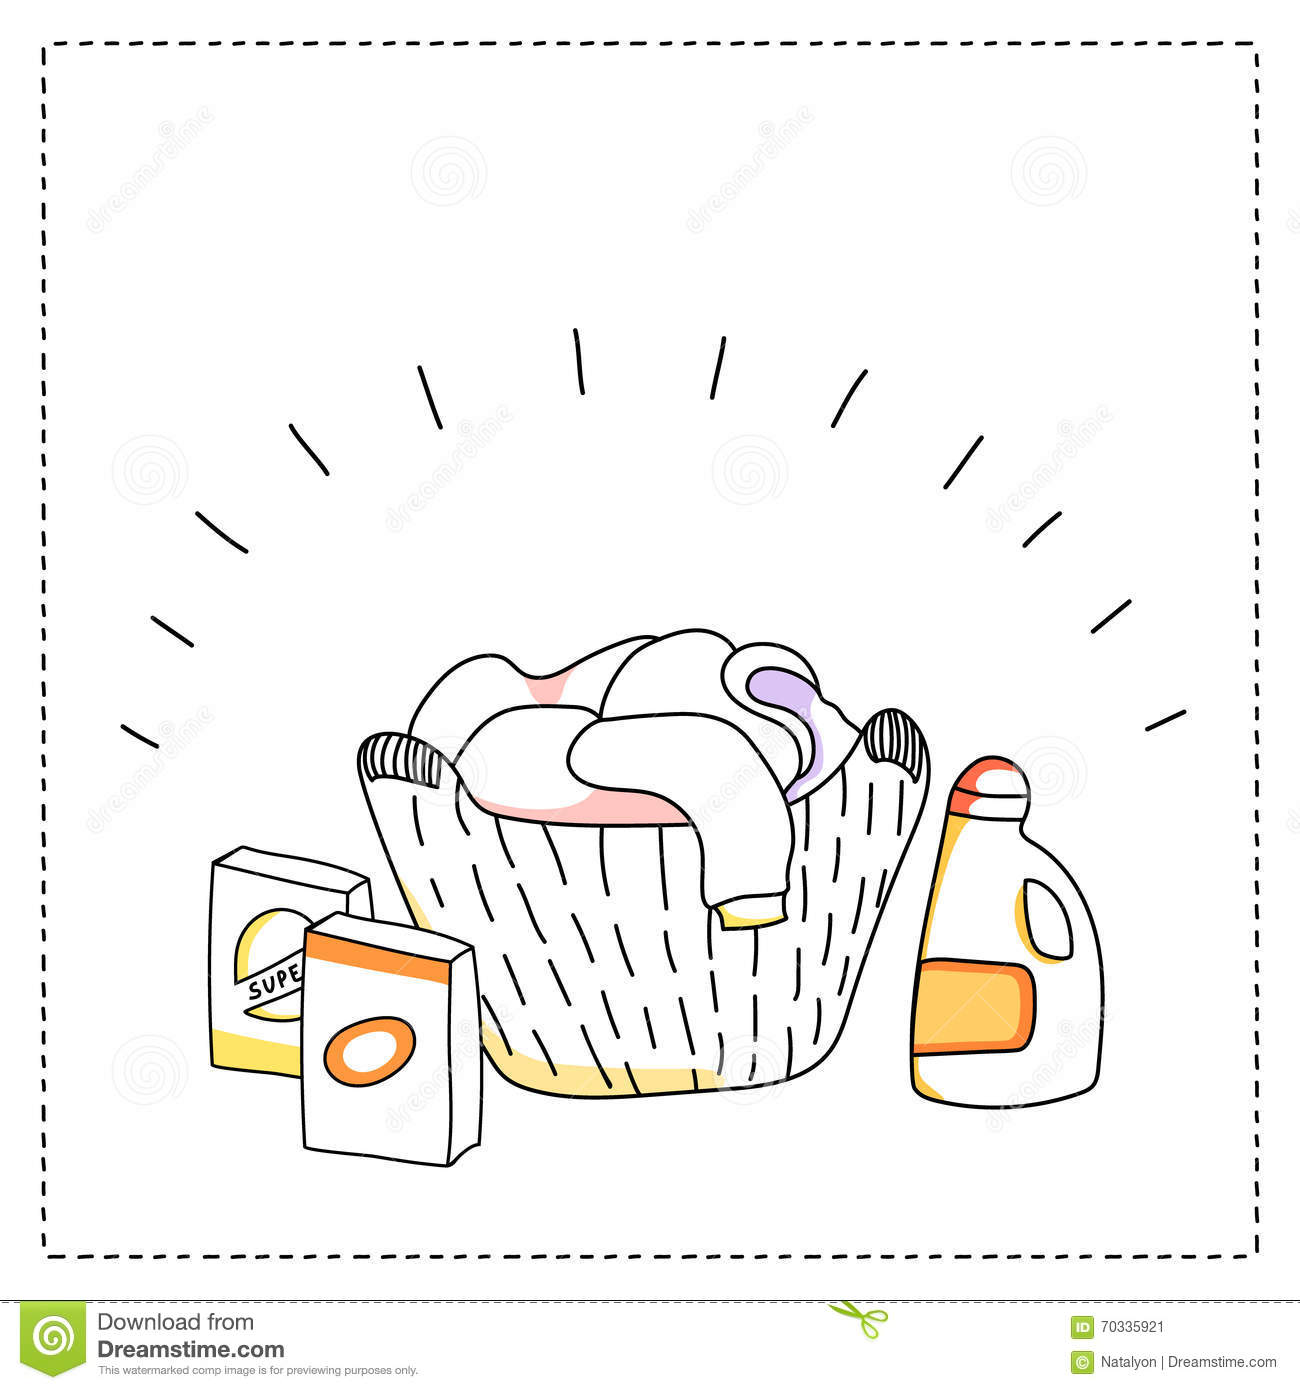 Laundry basket, detergents, vector illustration